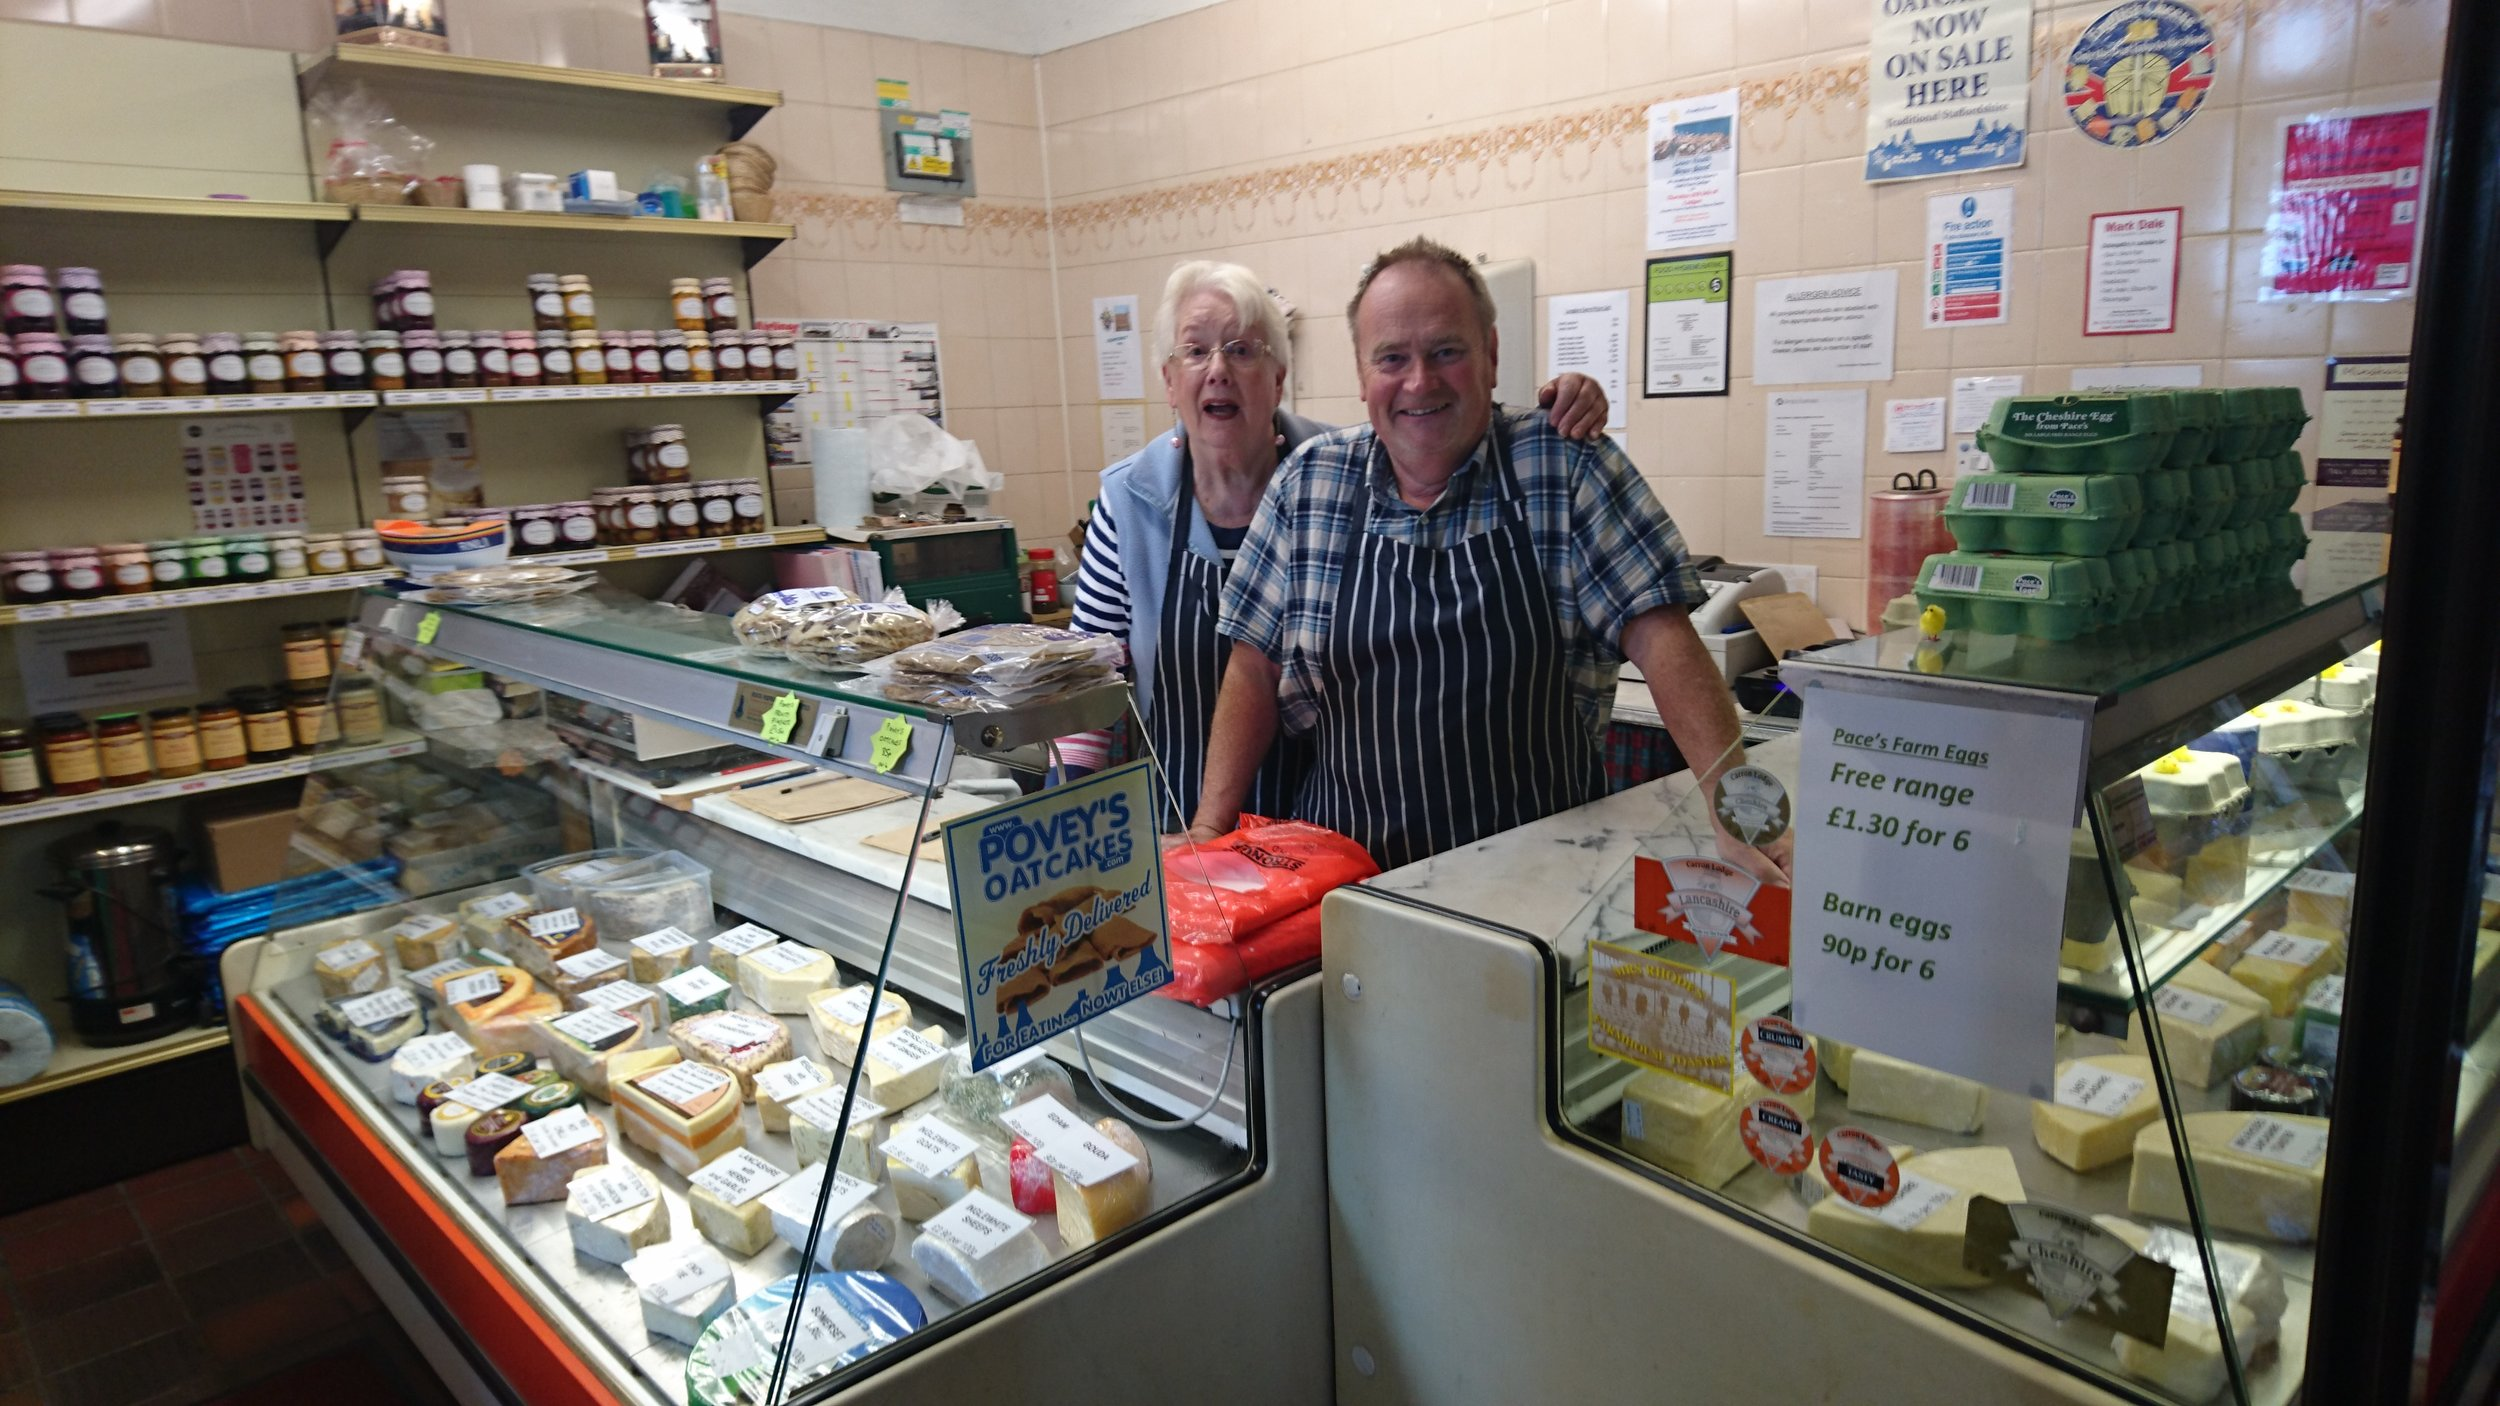 The Cheese Shop - Cheese, Dairy, Jams & Preserves, Cakes and BakeryLocation: Indoor Market Hall Shop UnitTrading: Monday - SaturdayContact: 07930 170104Email: thecheeseshop@outlook.com